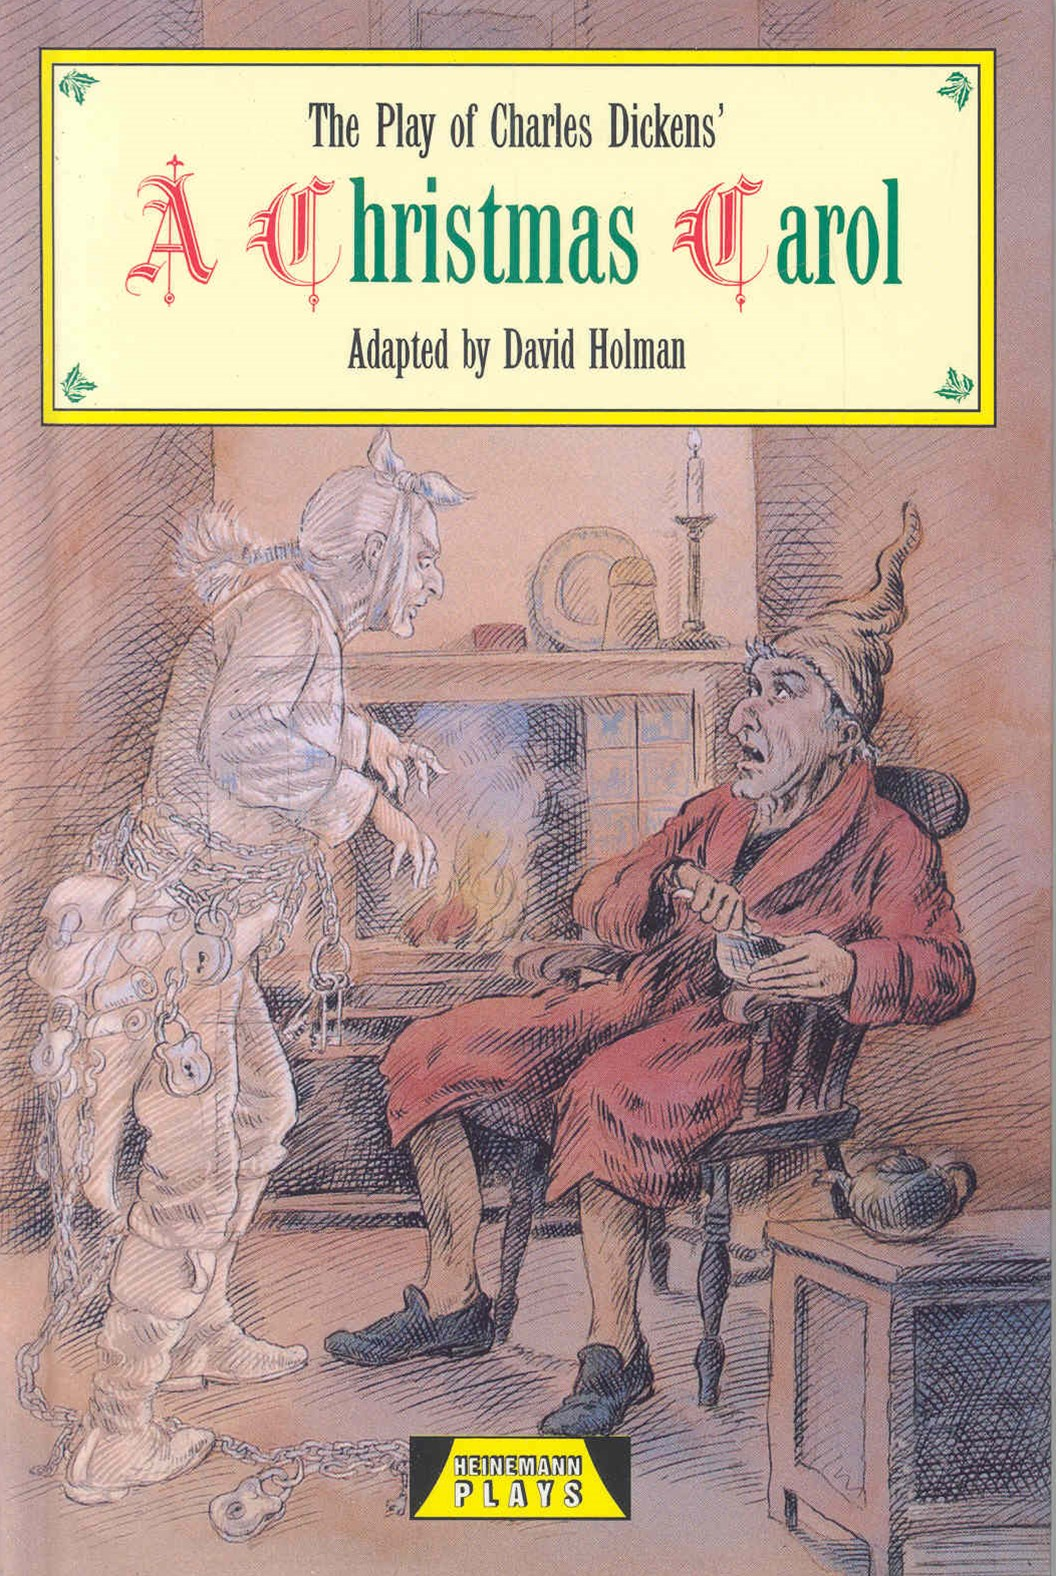 Heinemann Plays: The Play of Charles Dickens' A Christmas Carol